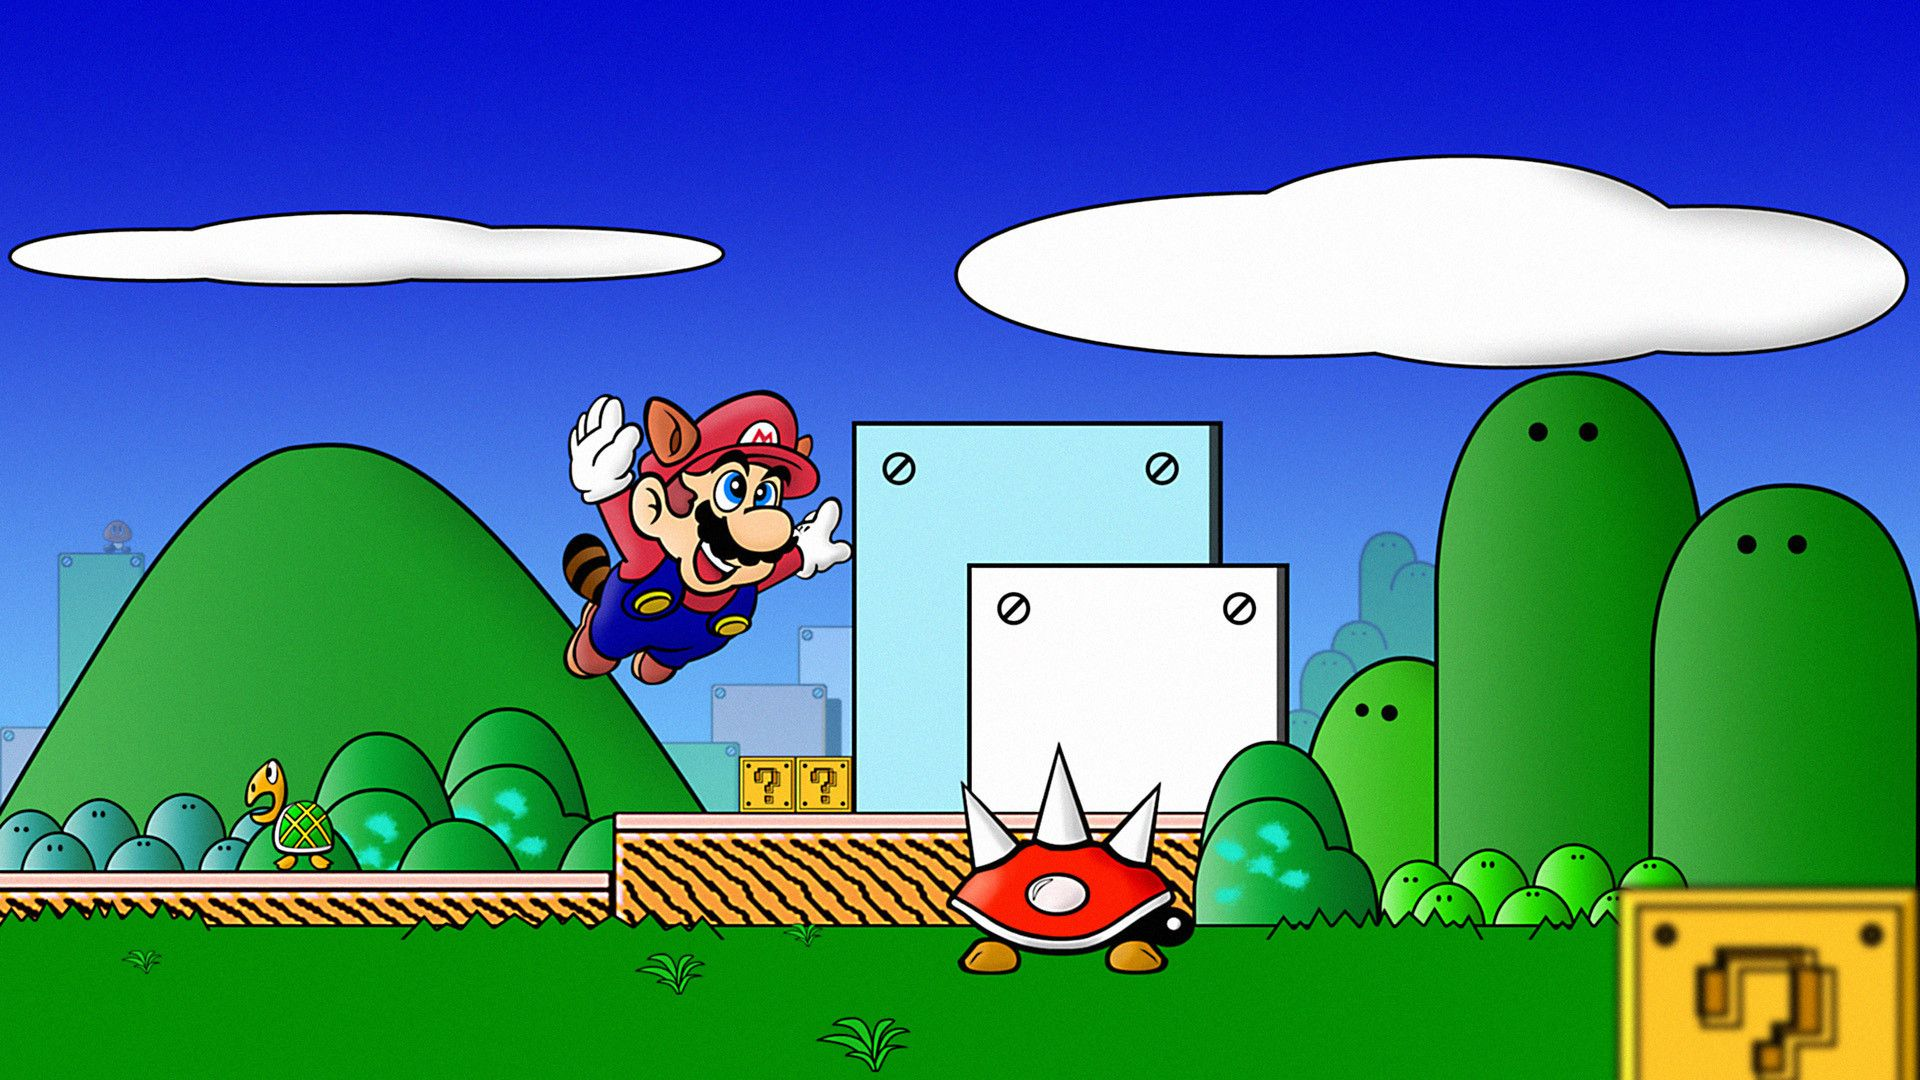 Wallpaper Mario Bros Posted By Michelle Tremblay